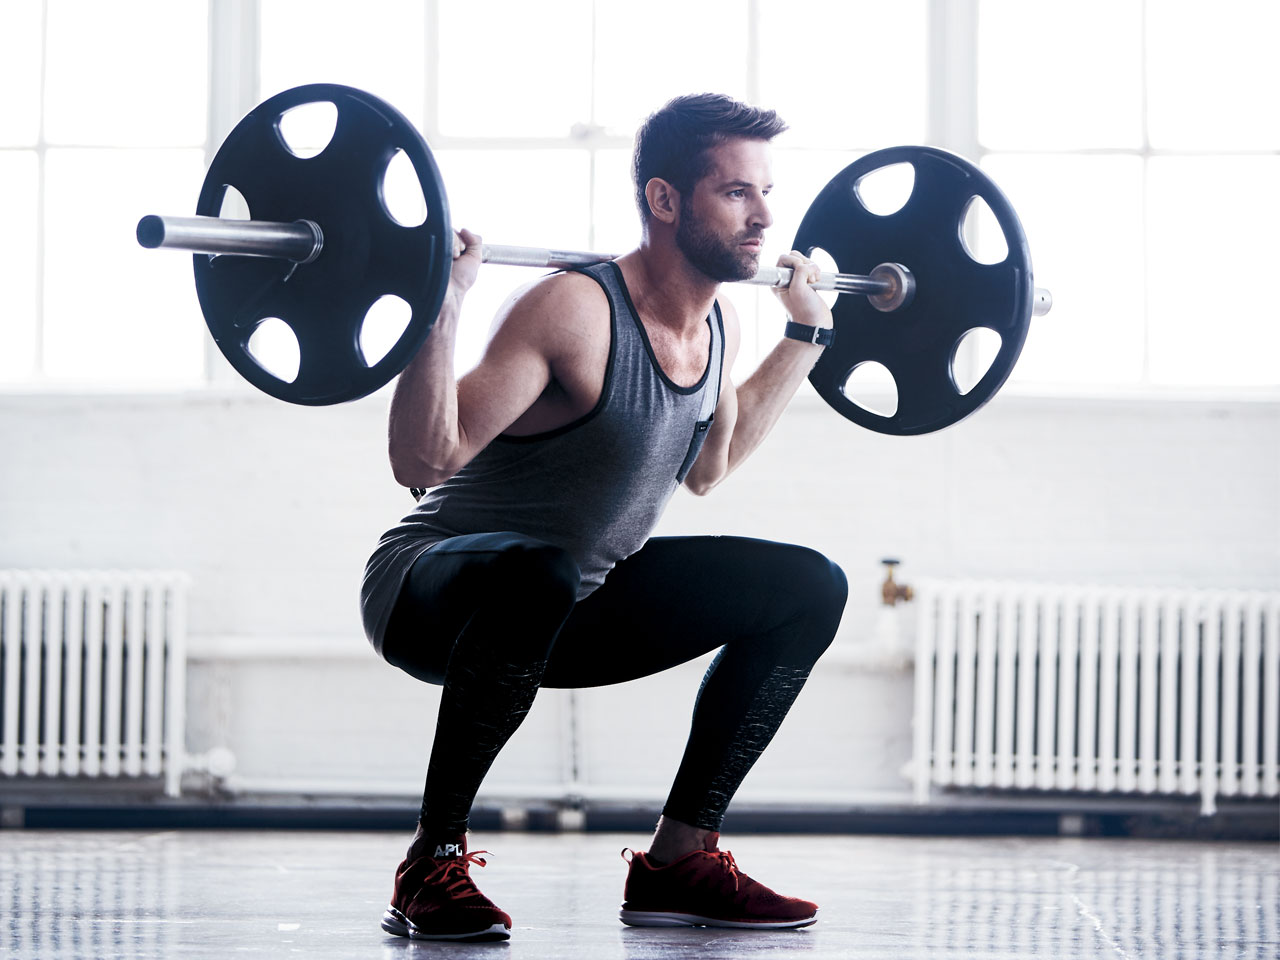 The Beginners Guide to Strength Training recommendations